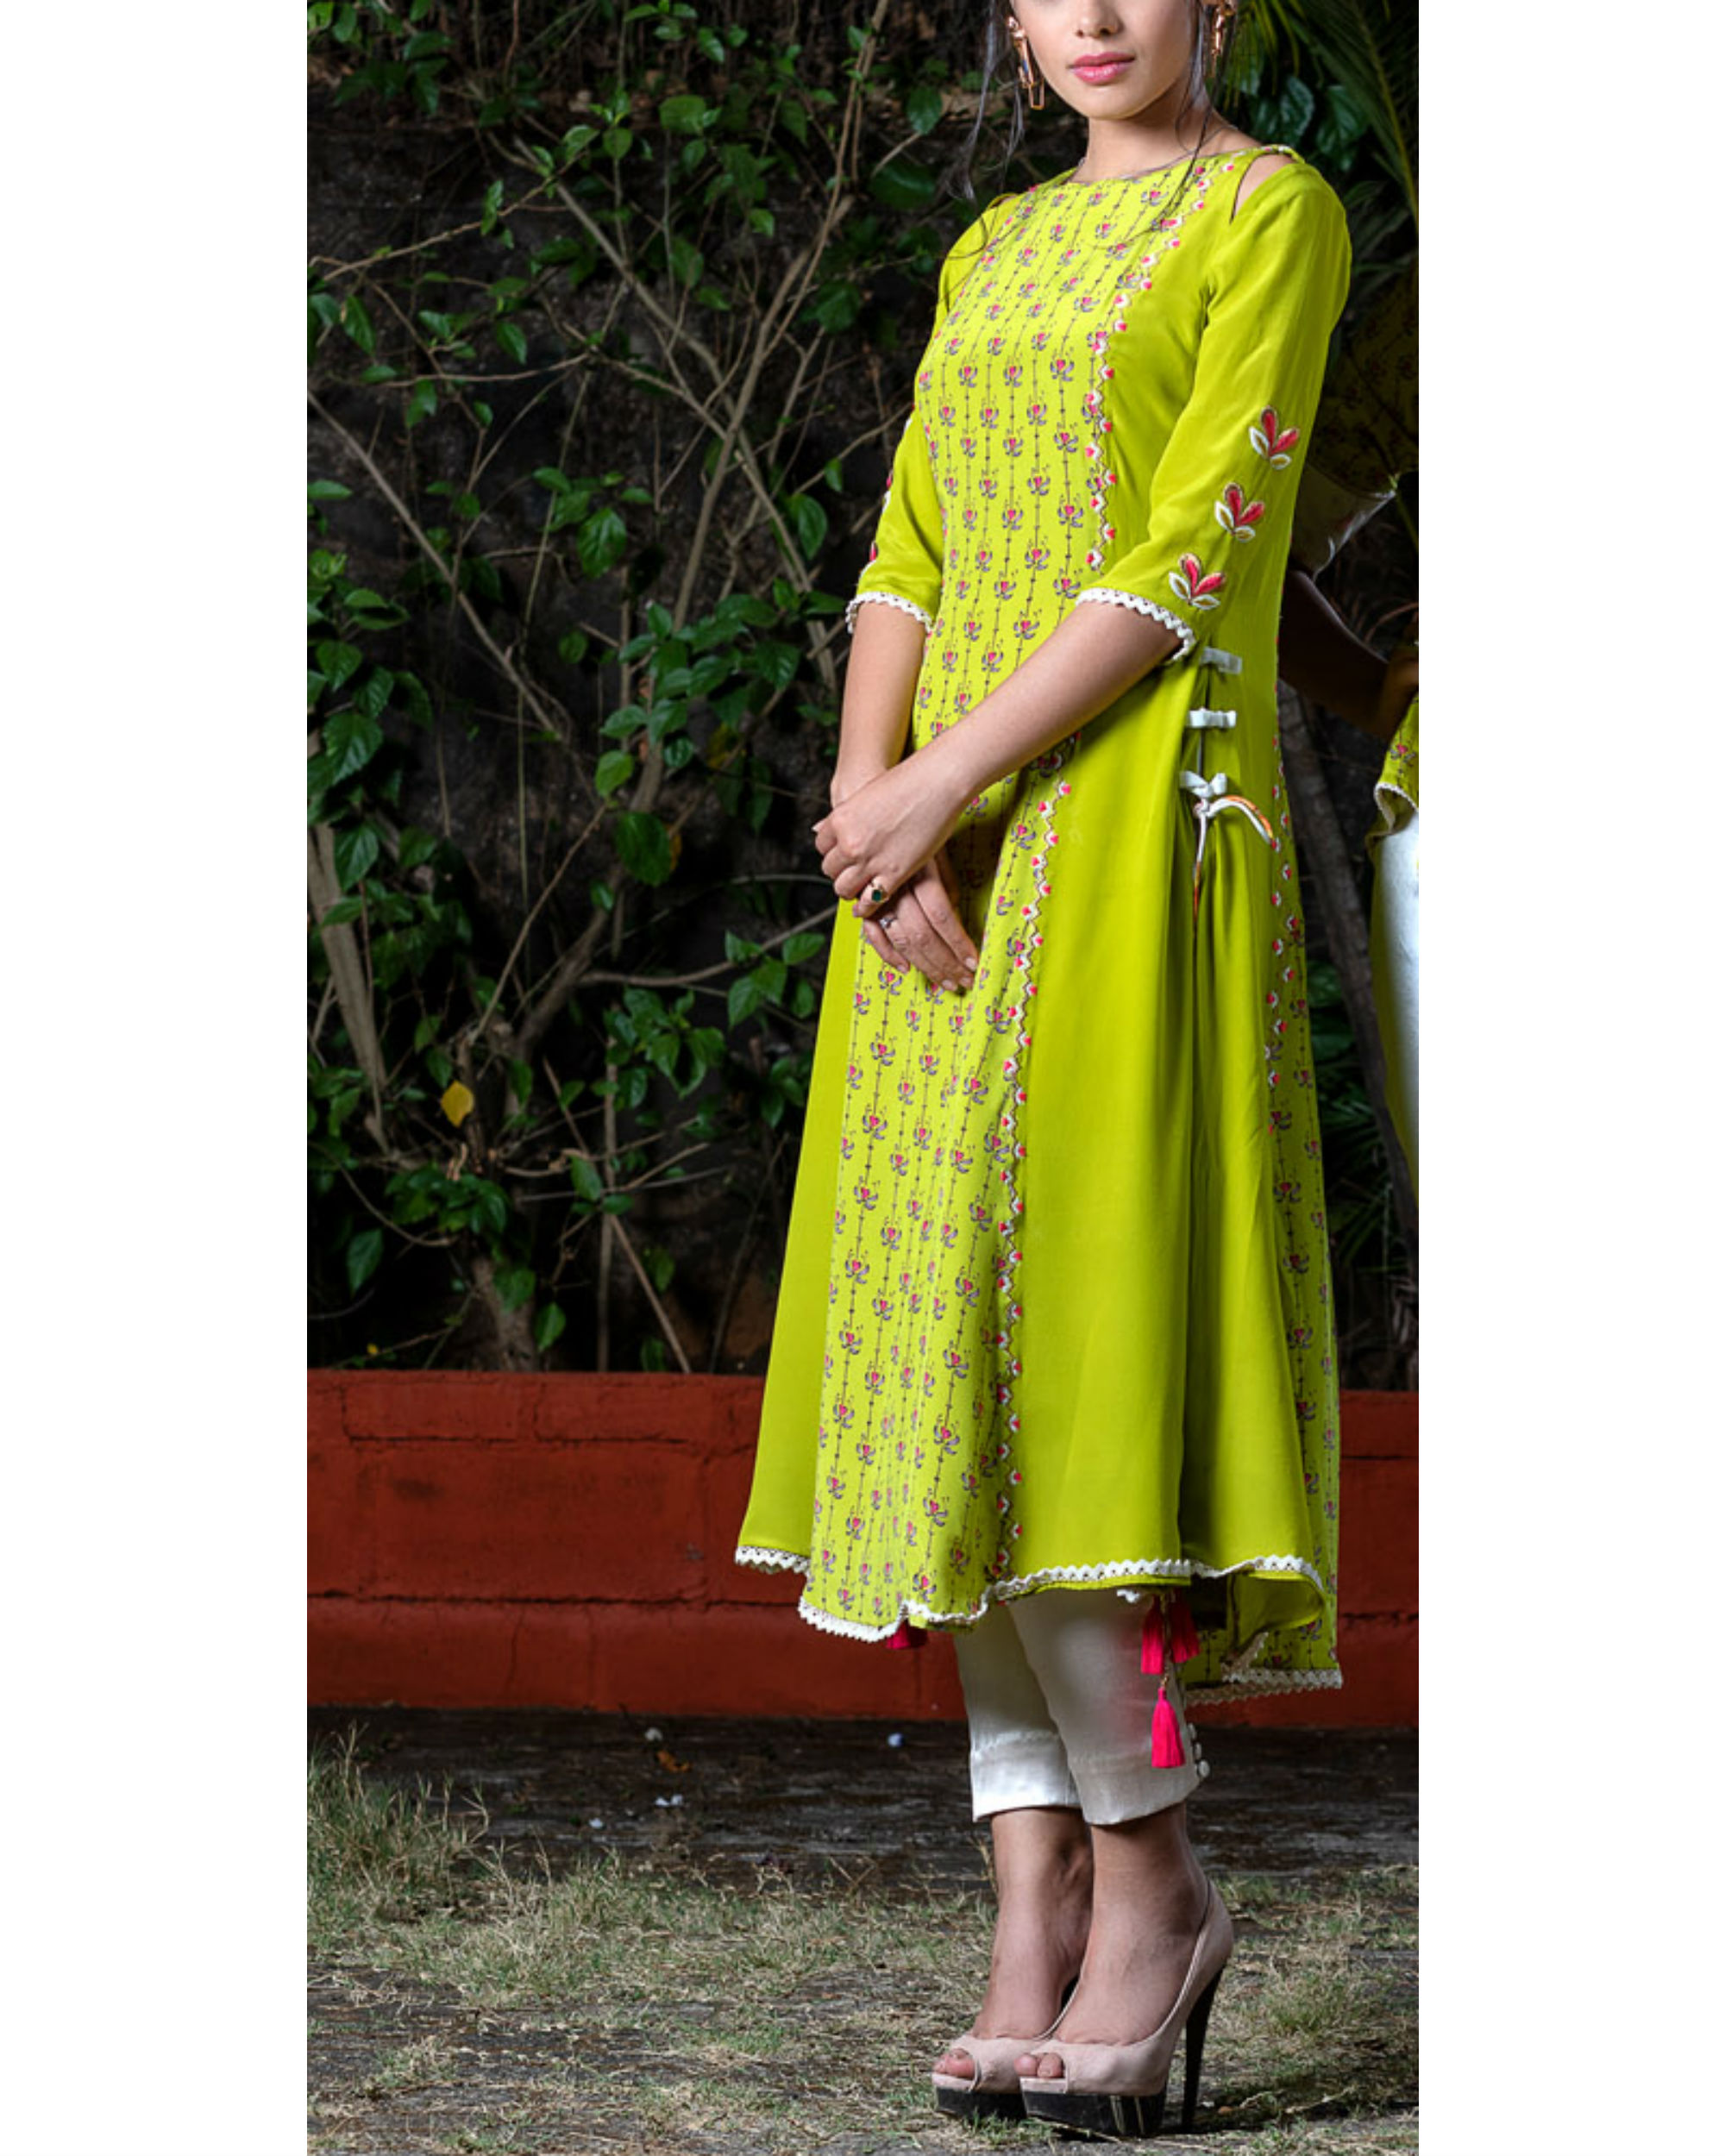 Green printed kurta and offwhite pant